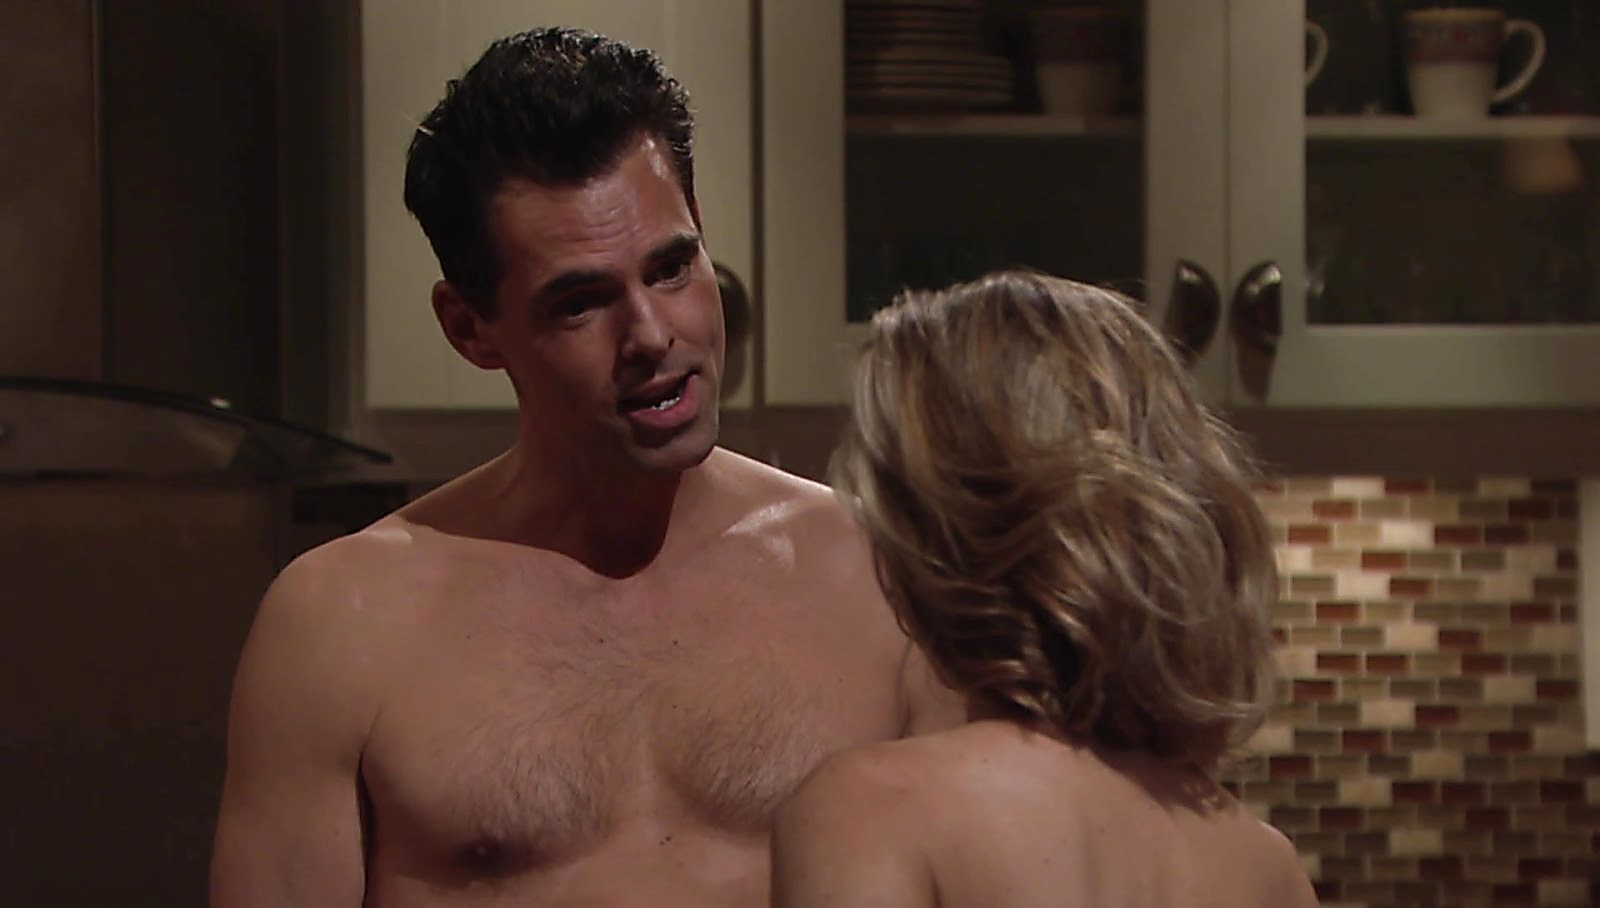 Jason Thompson sexy shirtless scene June 30, 2018, 1pm